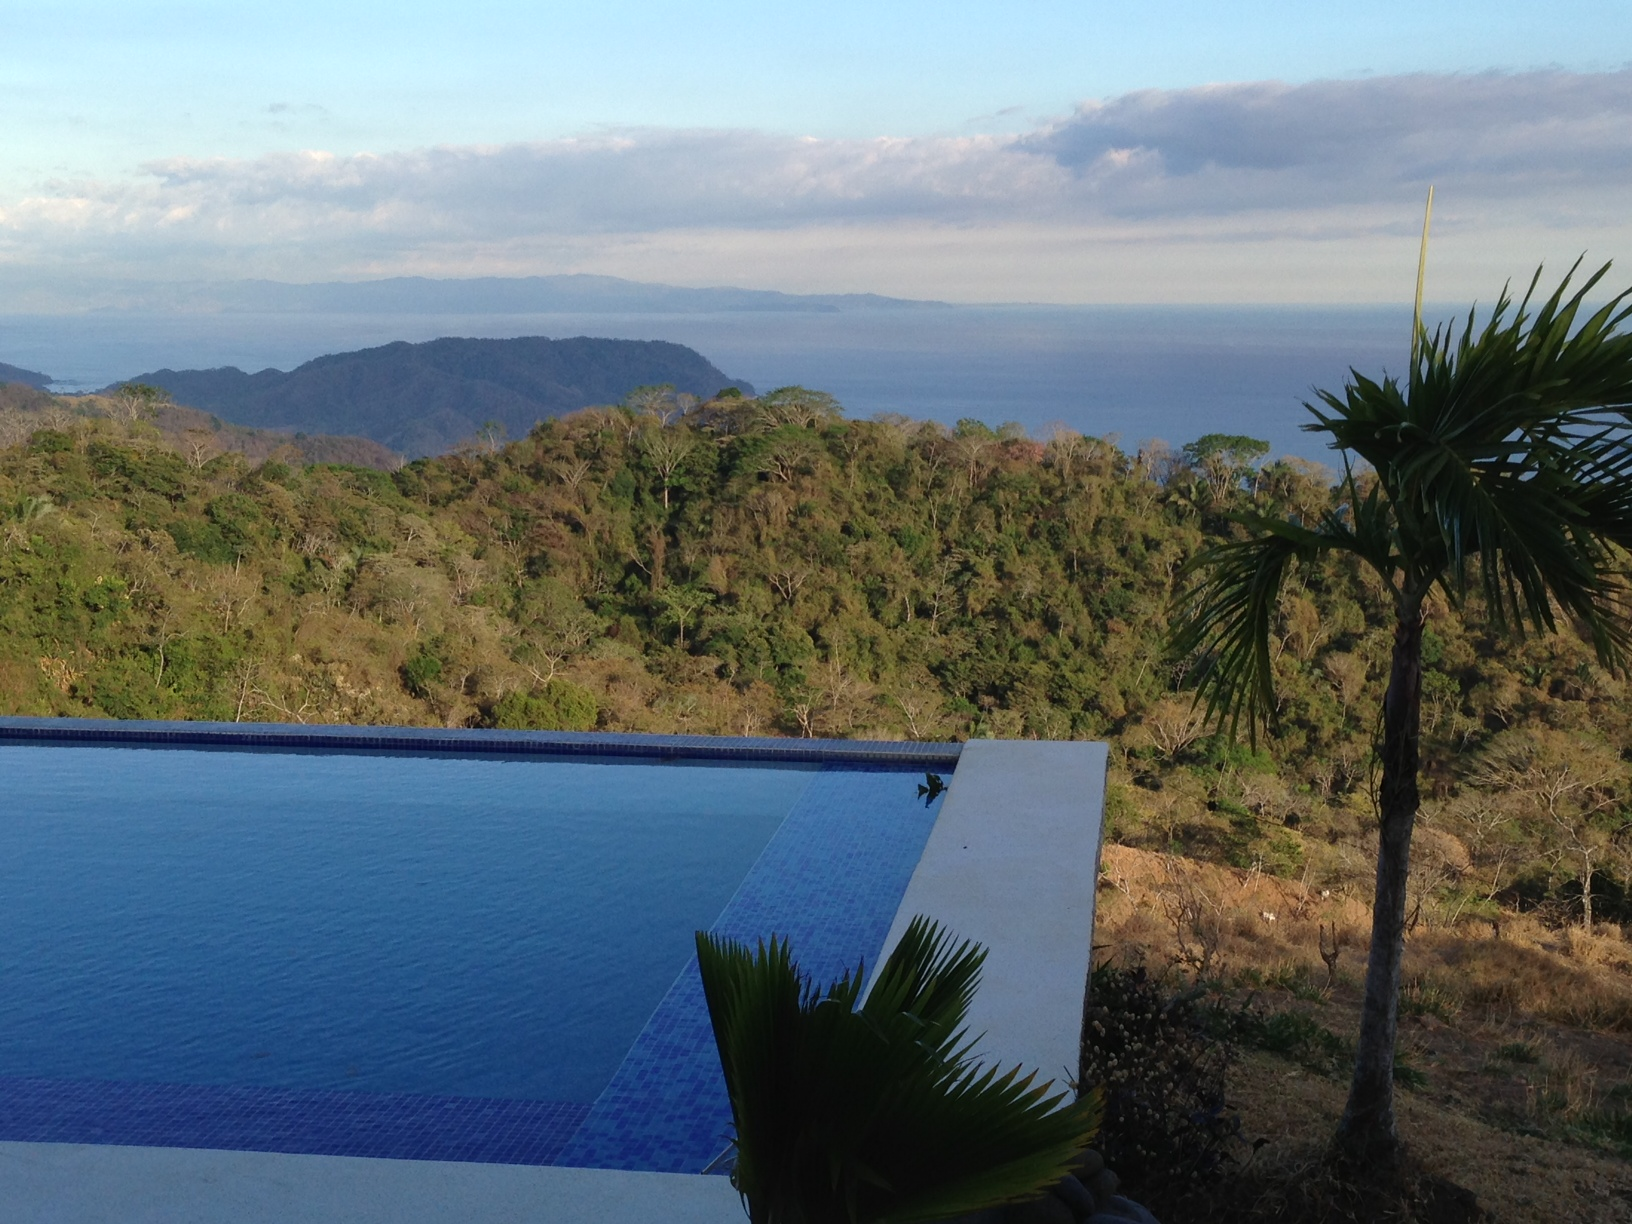 Heavenly life, 83 acre farm with 2 houses, pool, panoramic views, sunsets and much more at Tambor